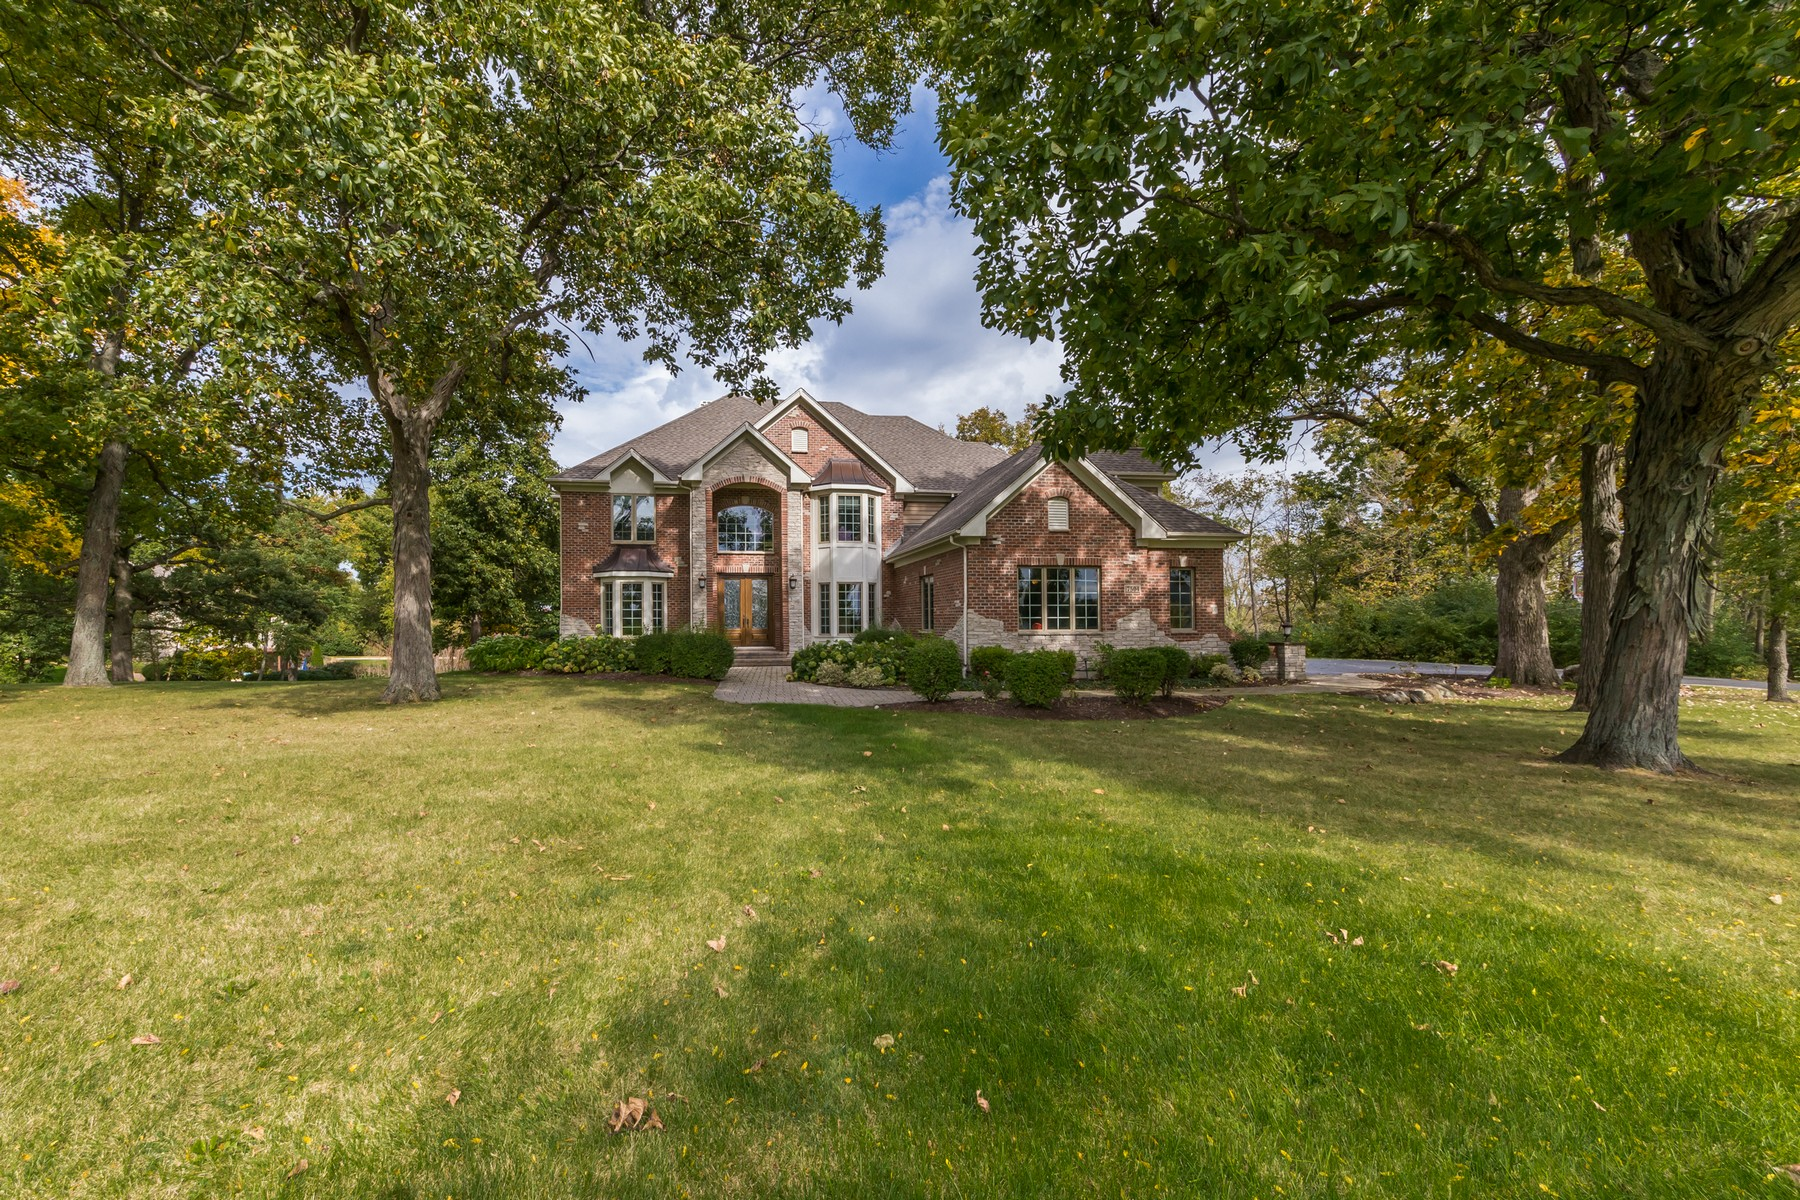 Single Family Home for Sale at Magnificent Luxurious Living In Crystal Lake 7504 Vida Avenue Lakewood, Illinois 60014 United States